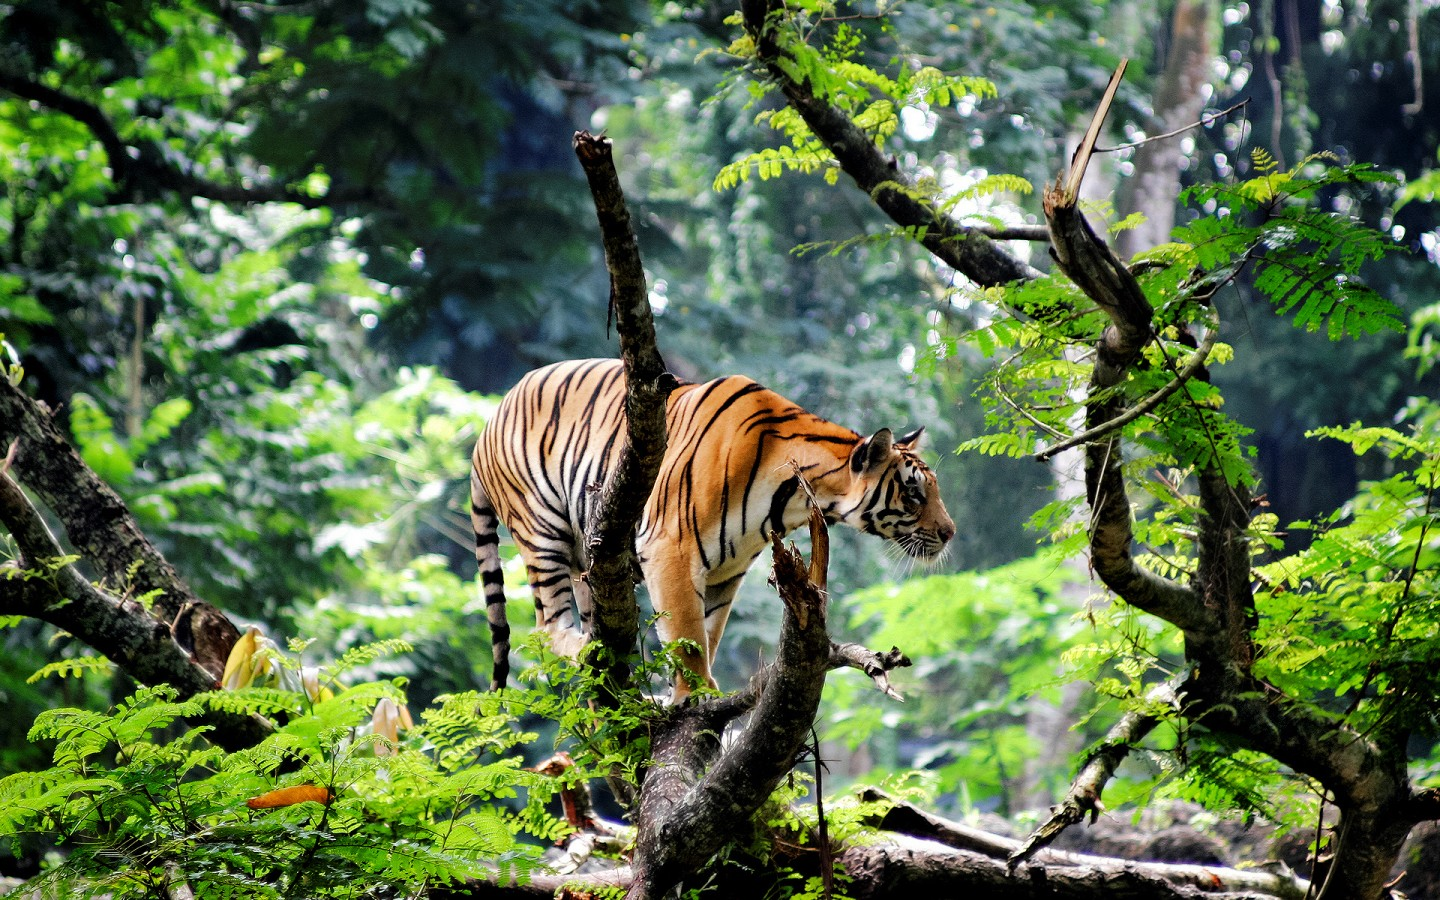 Cute Bengal Wallpapers Hd 1366x768 Bengal Tiger In Jungle Wallpapers Hd Wallpapers Id 15726